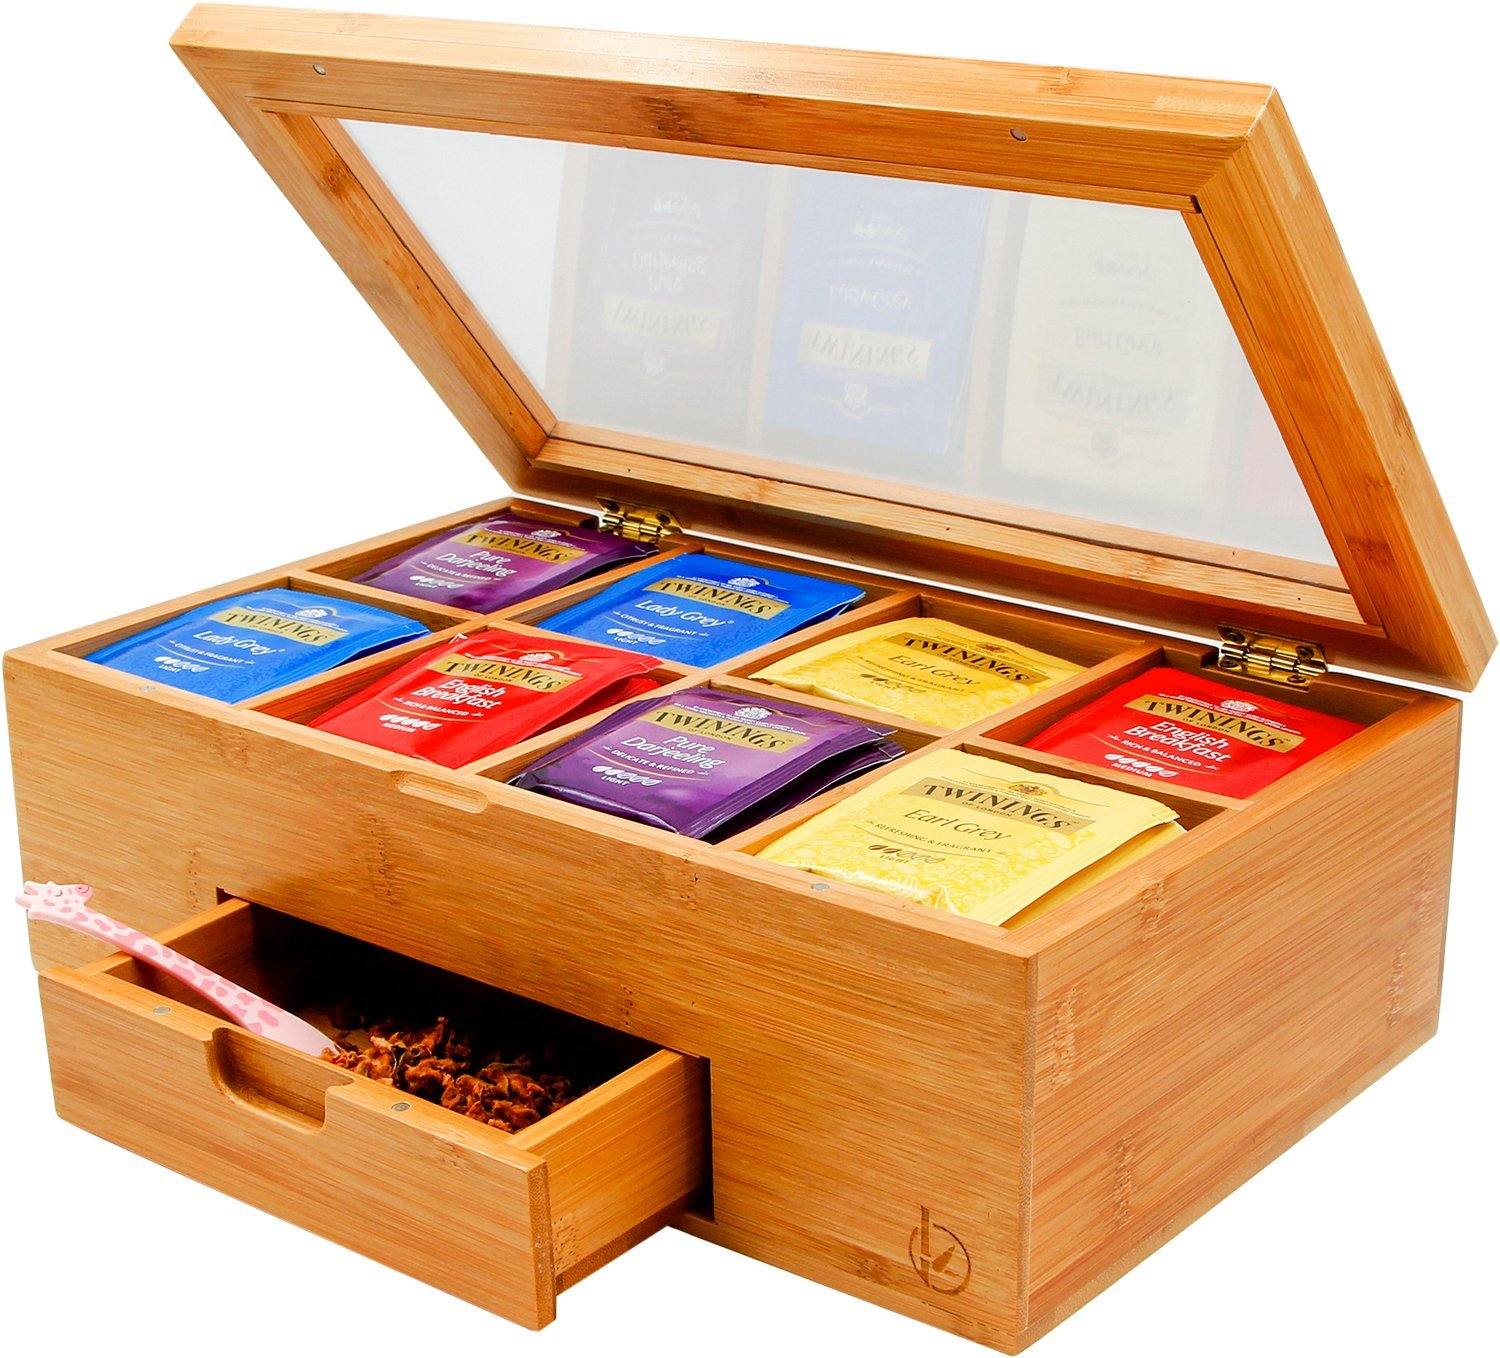 Ecbanli Bamboo Tea Box with Small Drawer, Taller Size Tea Bag Storage Organizer, Free Tea Squeezer Included by ECBANLI